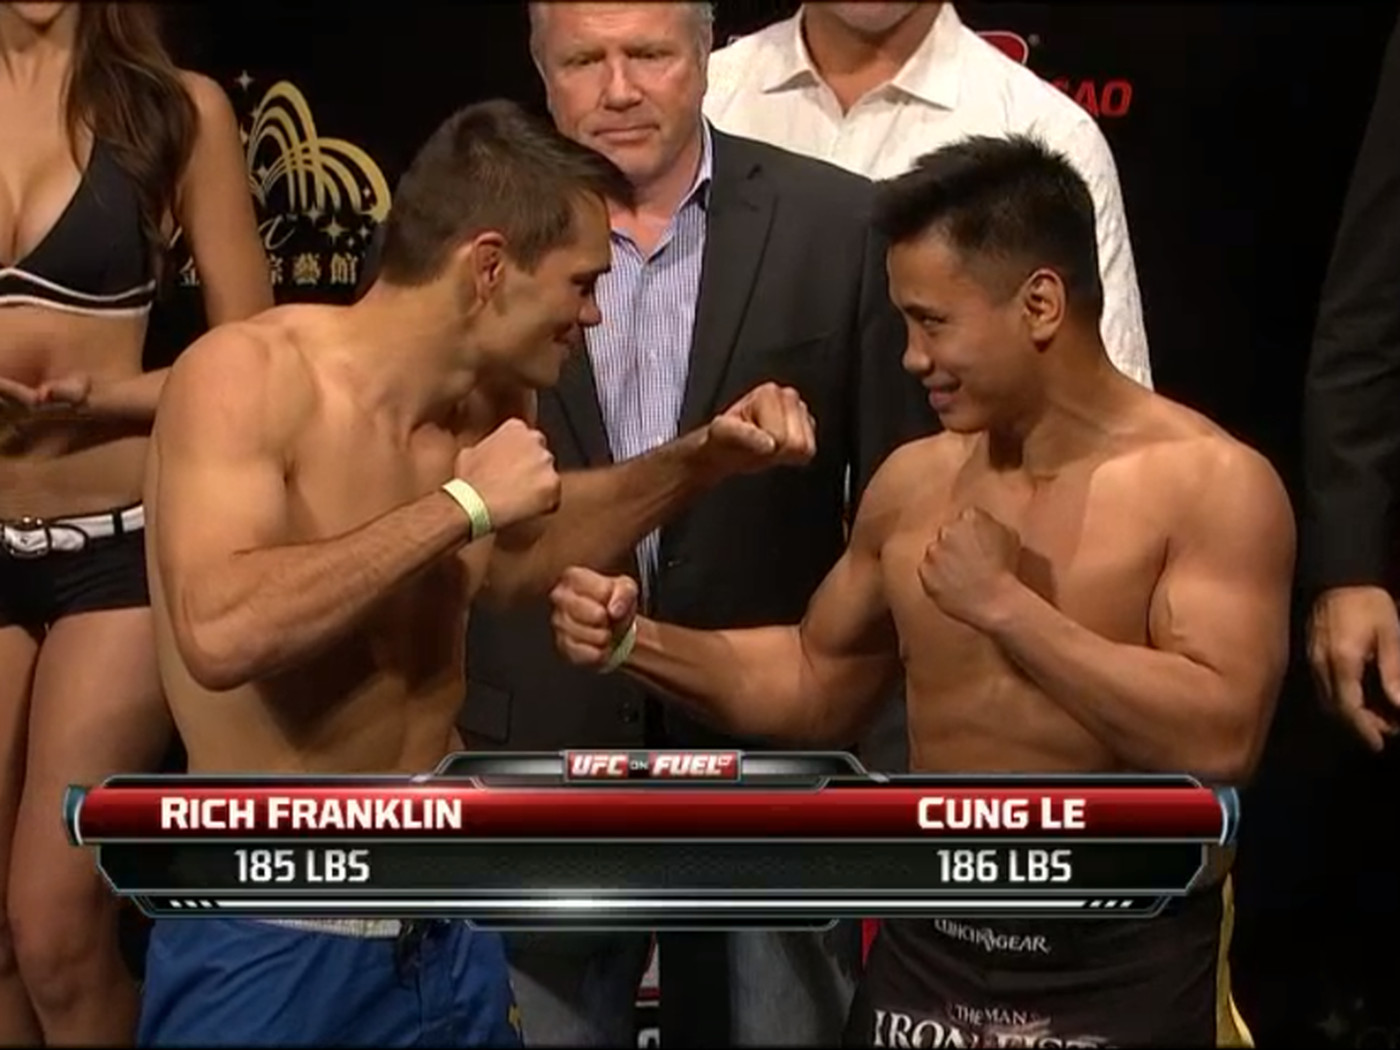 Rich Franklin Vs Cung Le Staredown Pic From Ufc On Fuel Tv 6 Weigh